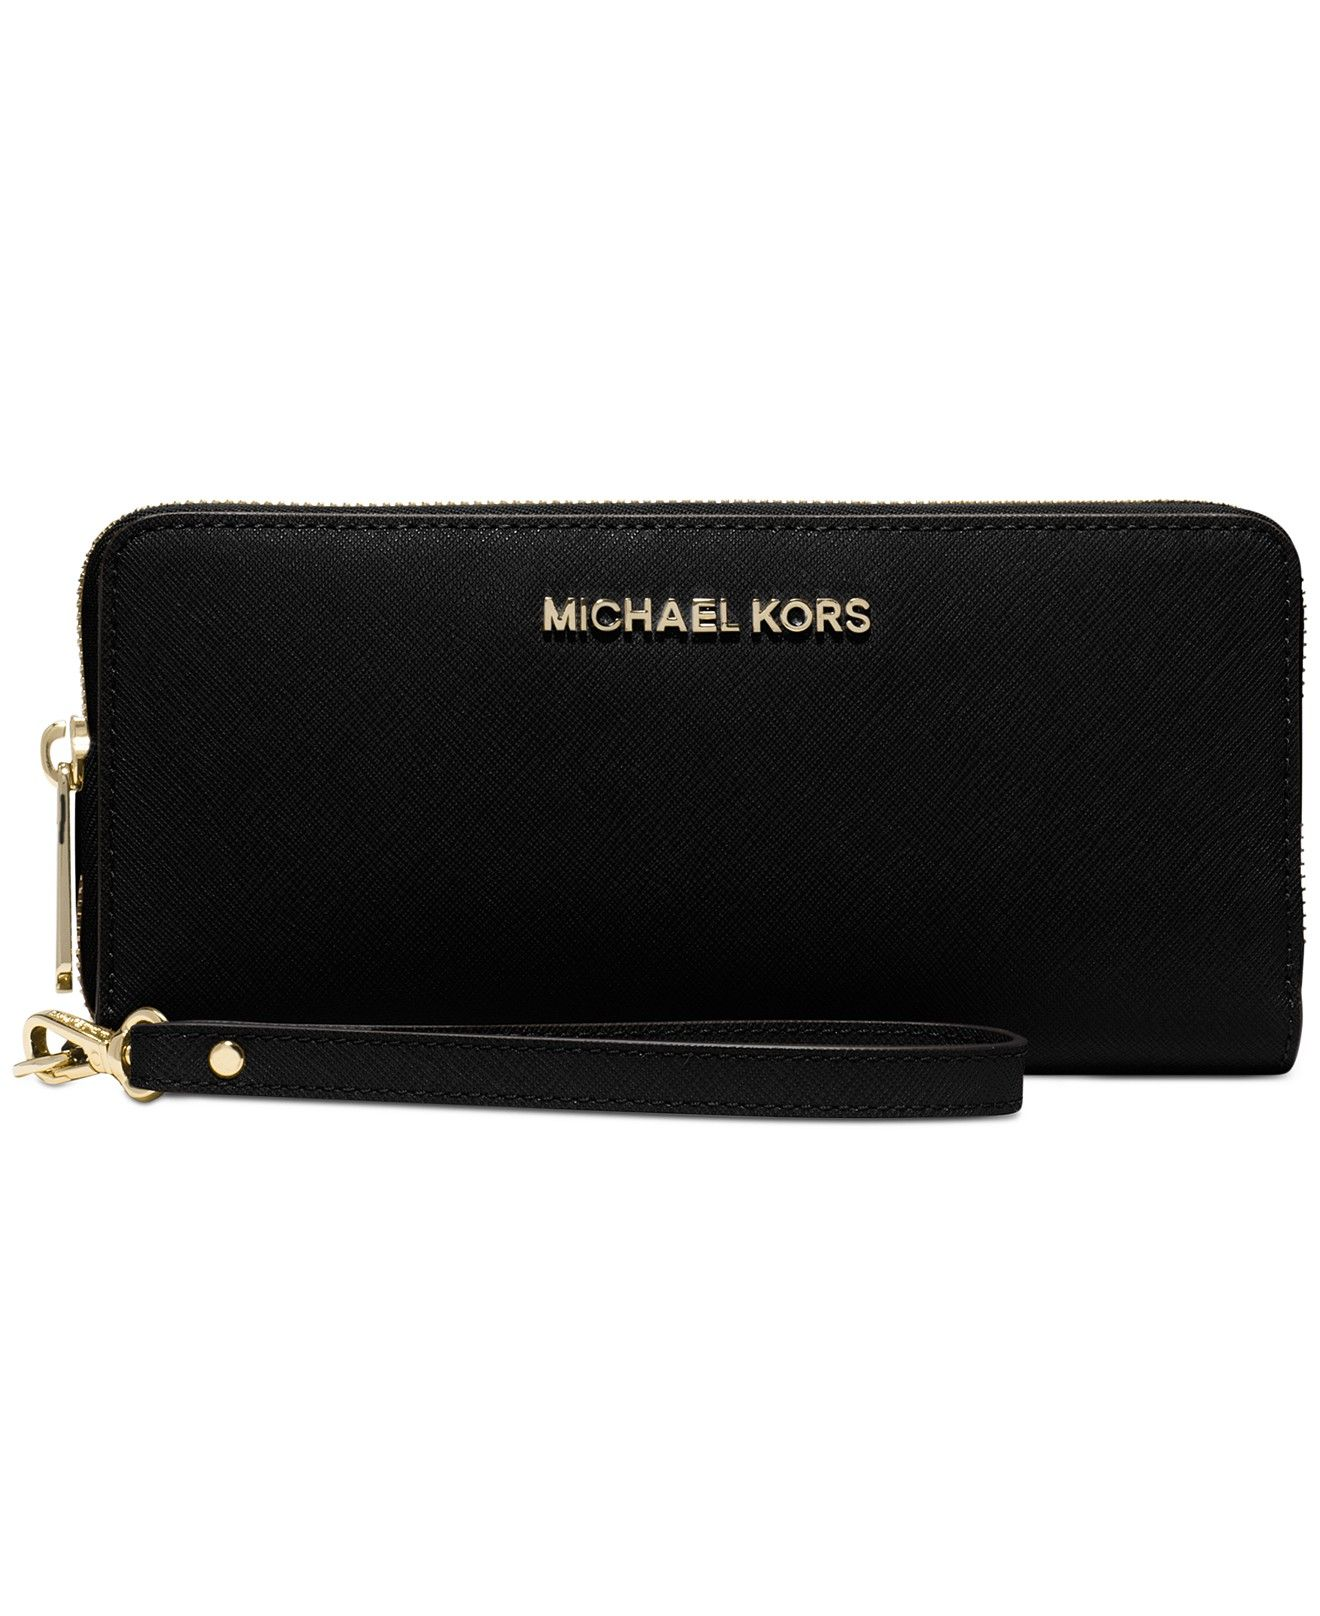 efc70f5cd3799a MICHAEL Michael Kors Jet Set Travel Continental Wallet - MICHAEL Michael  Kors - Handbags & Accessories - Macy's